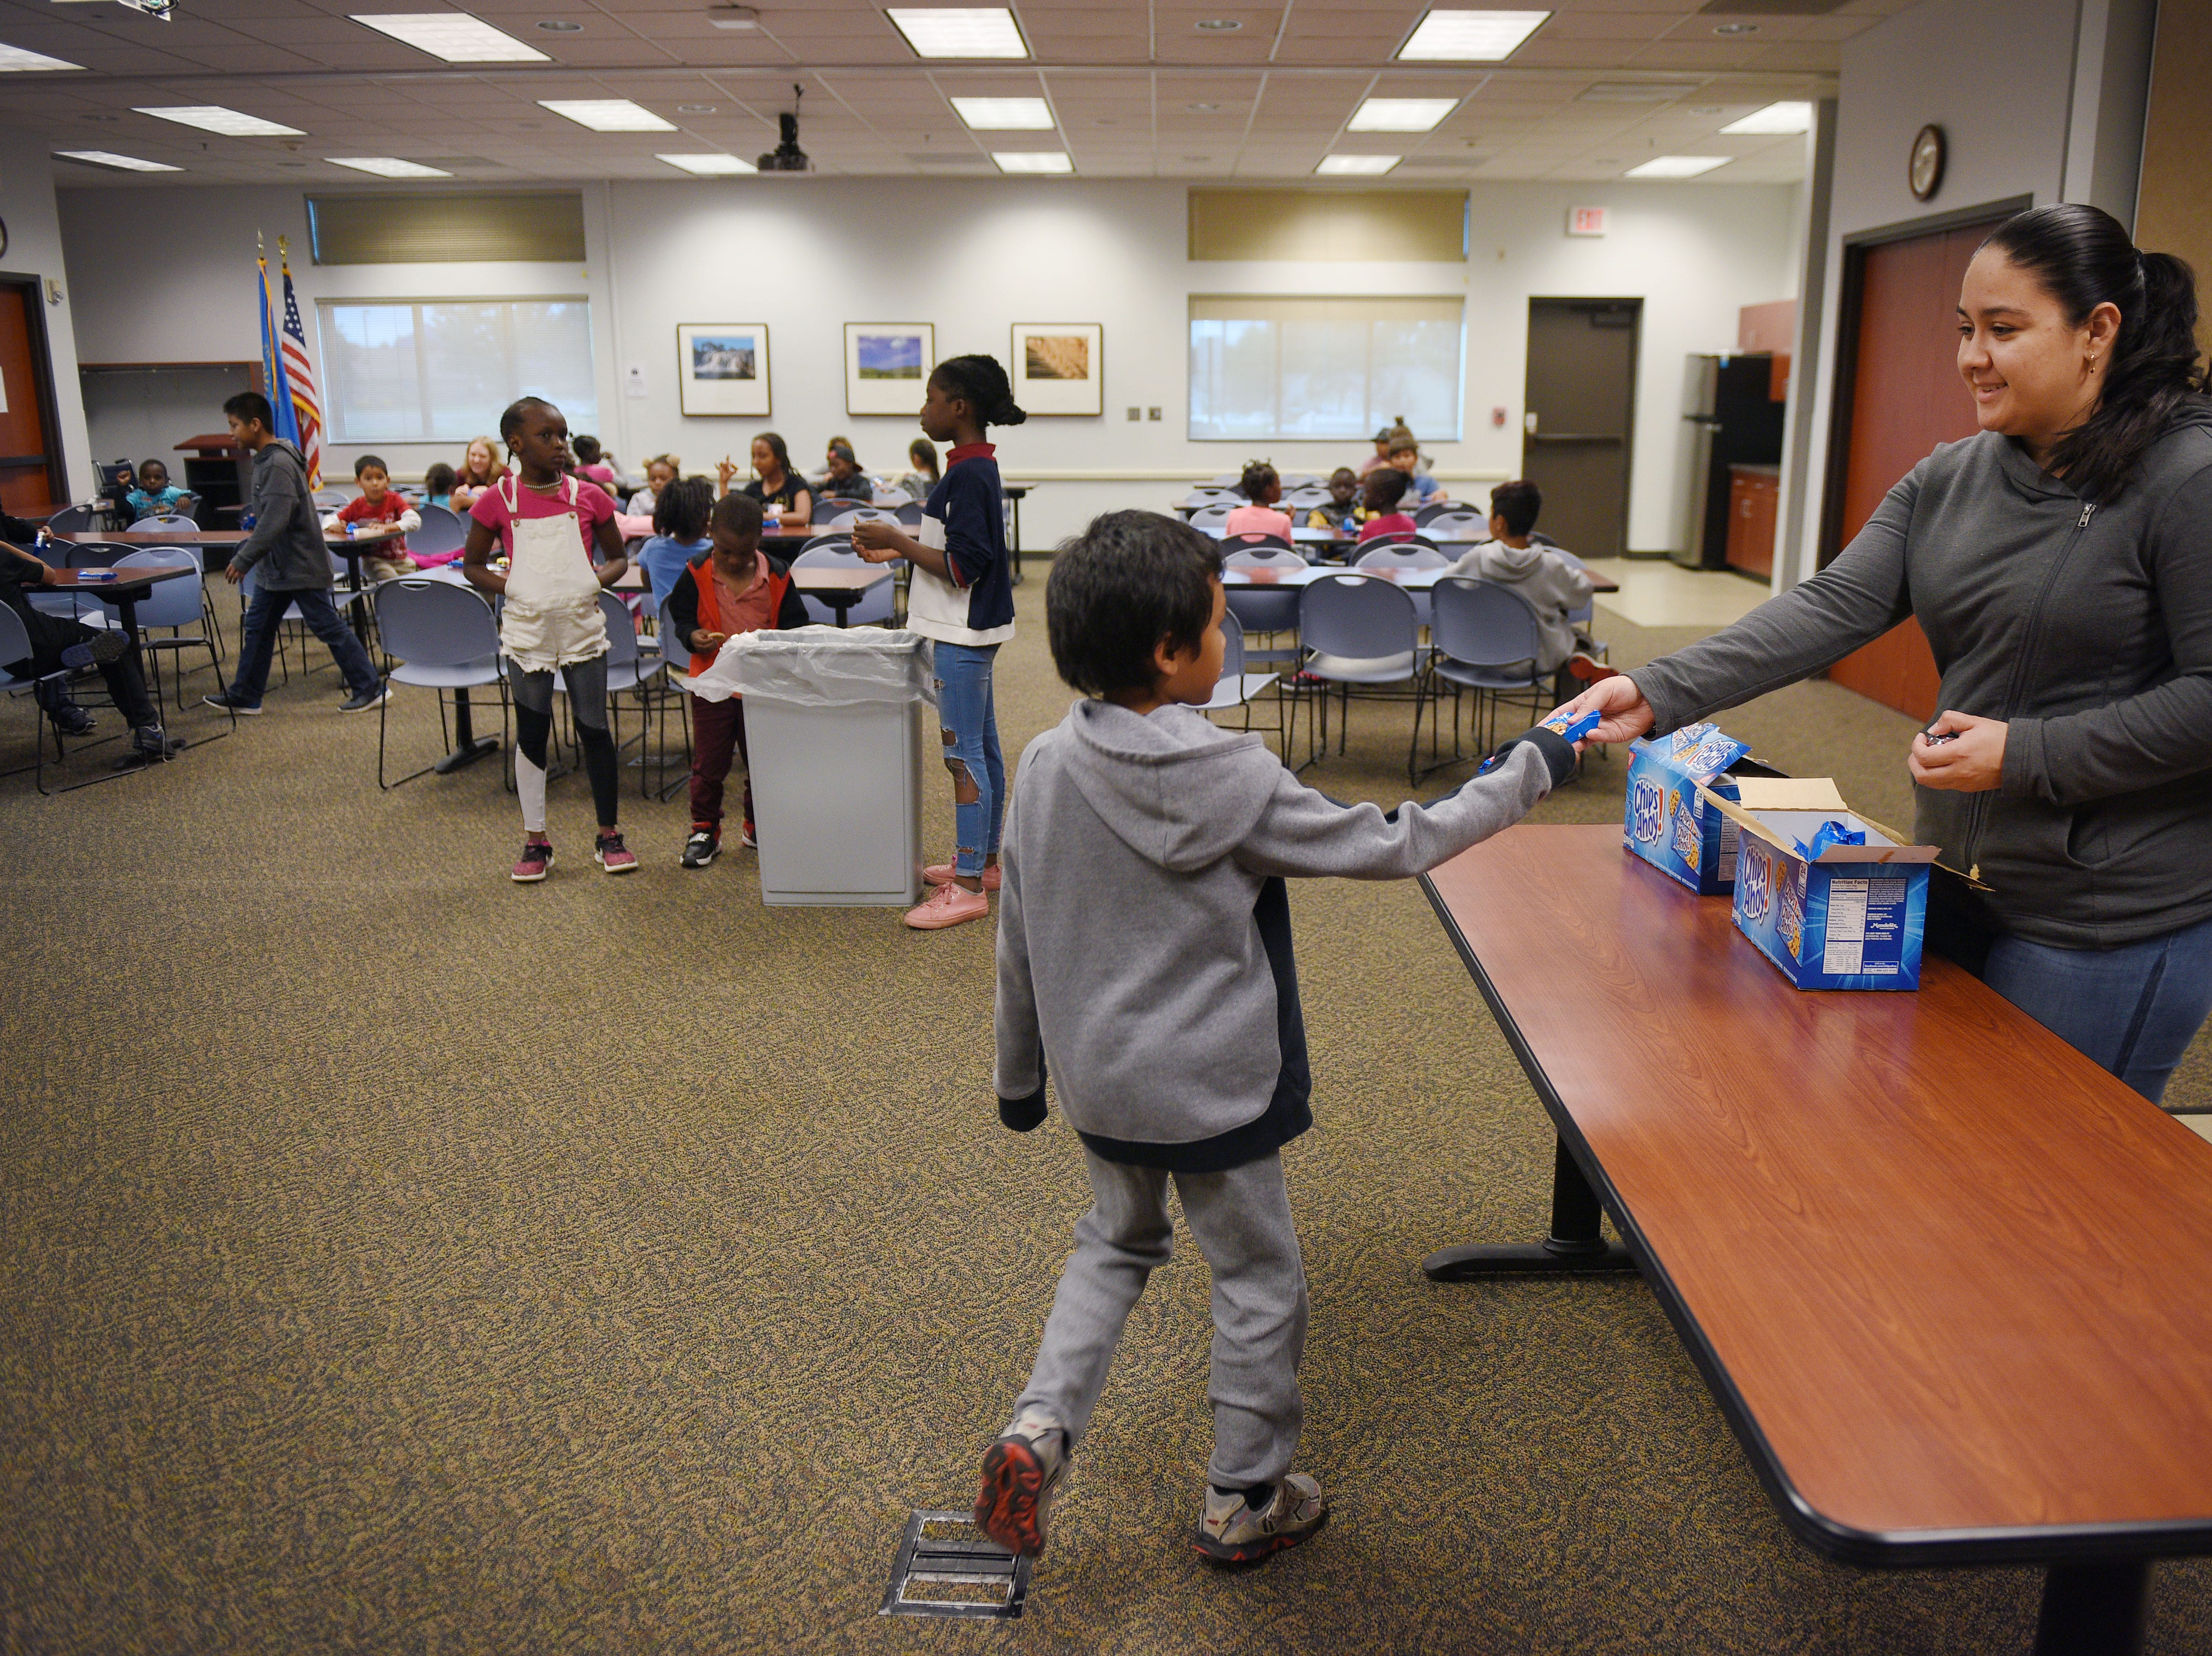 Monica Melendez hands out snacks to kids at the Oak View Library after school Wednesday, Sept 26, at the library in Sioux Falls. The after school snacks are provided by Feeding South Dakota.